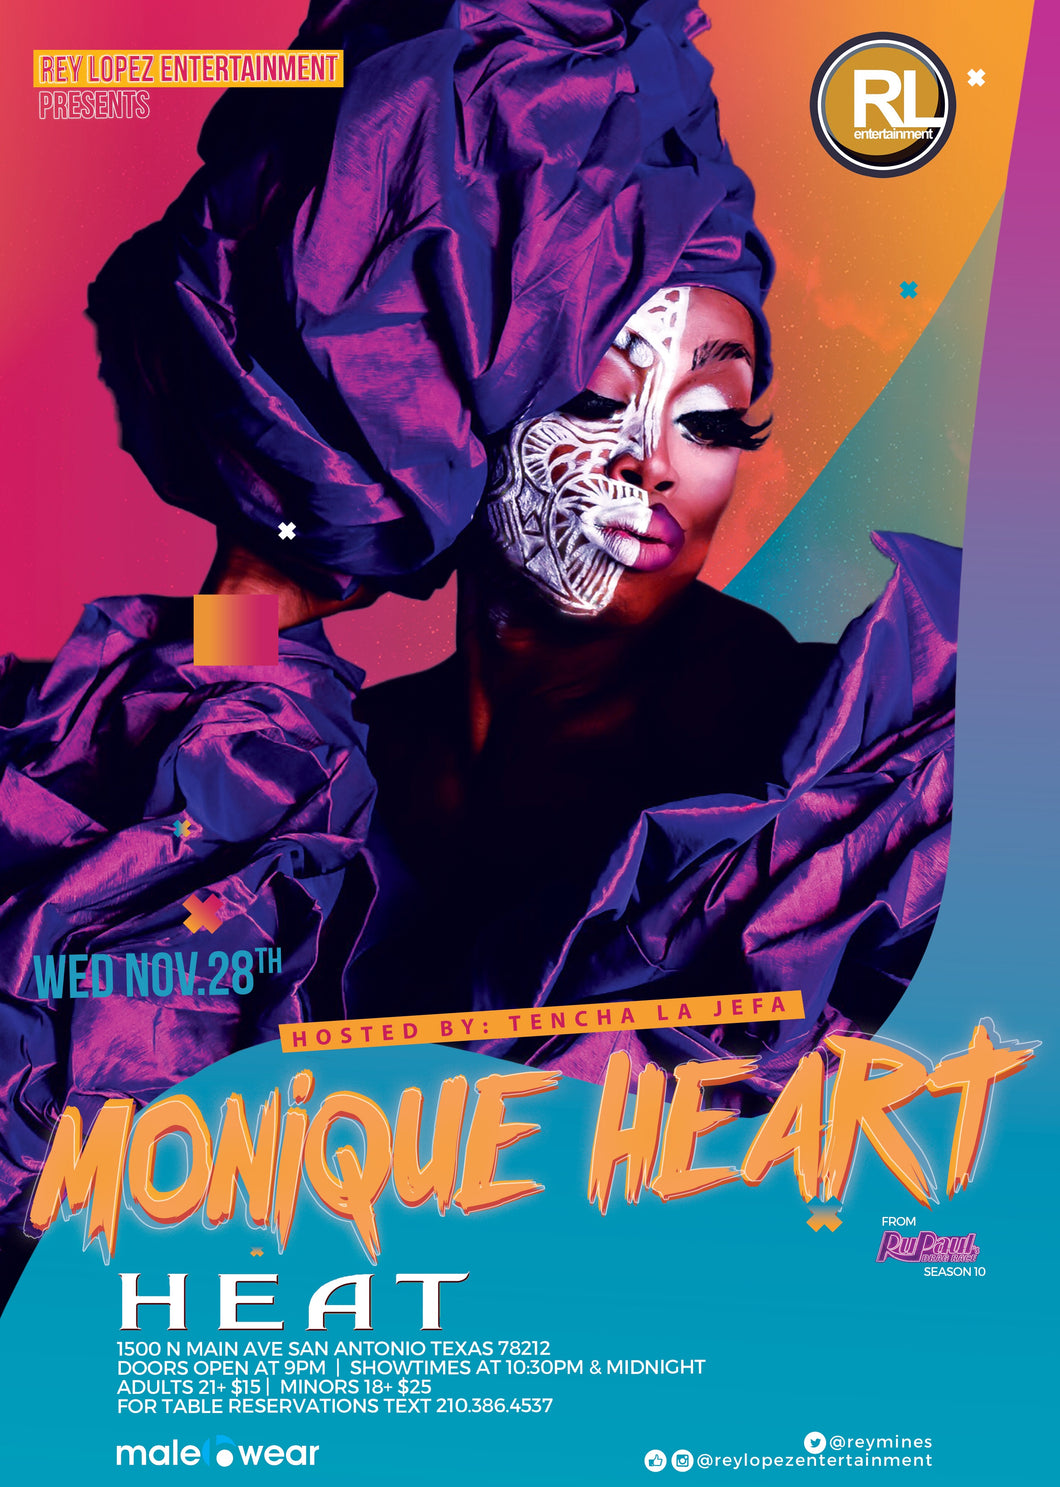 Monique Heart